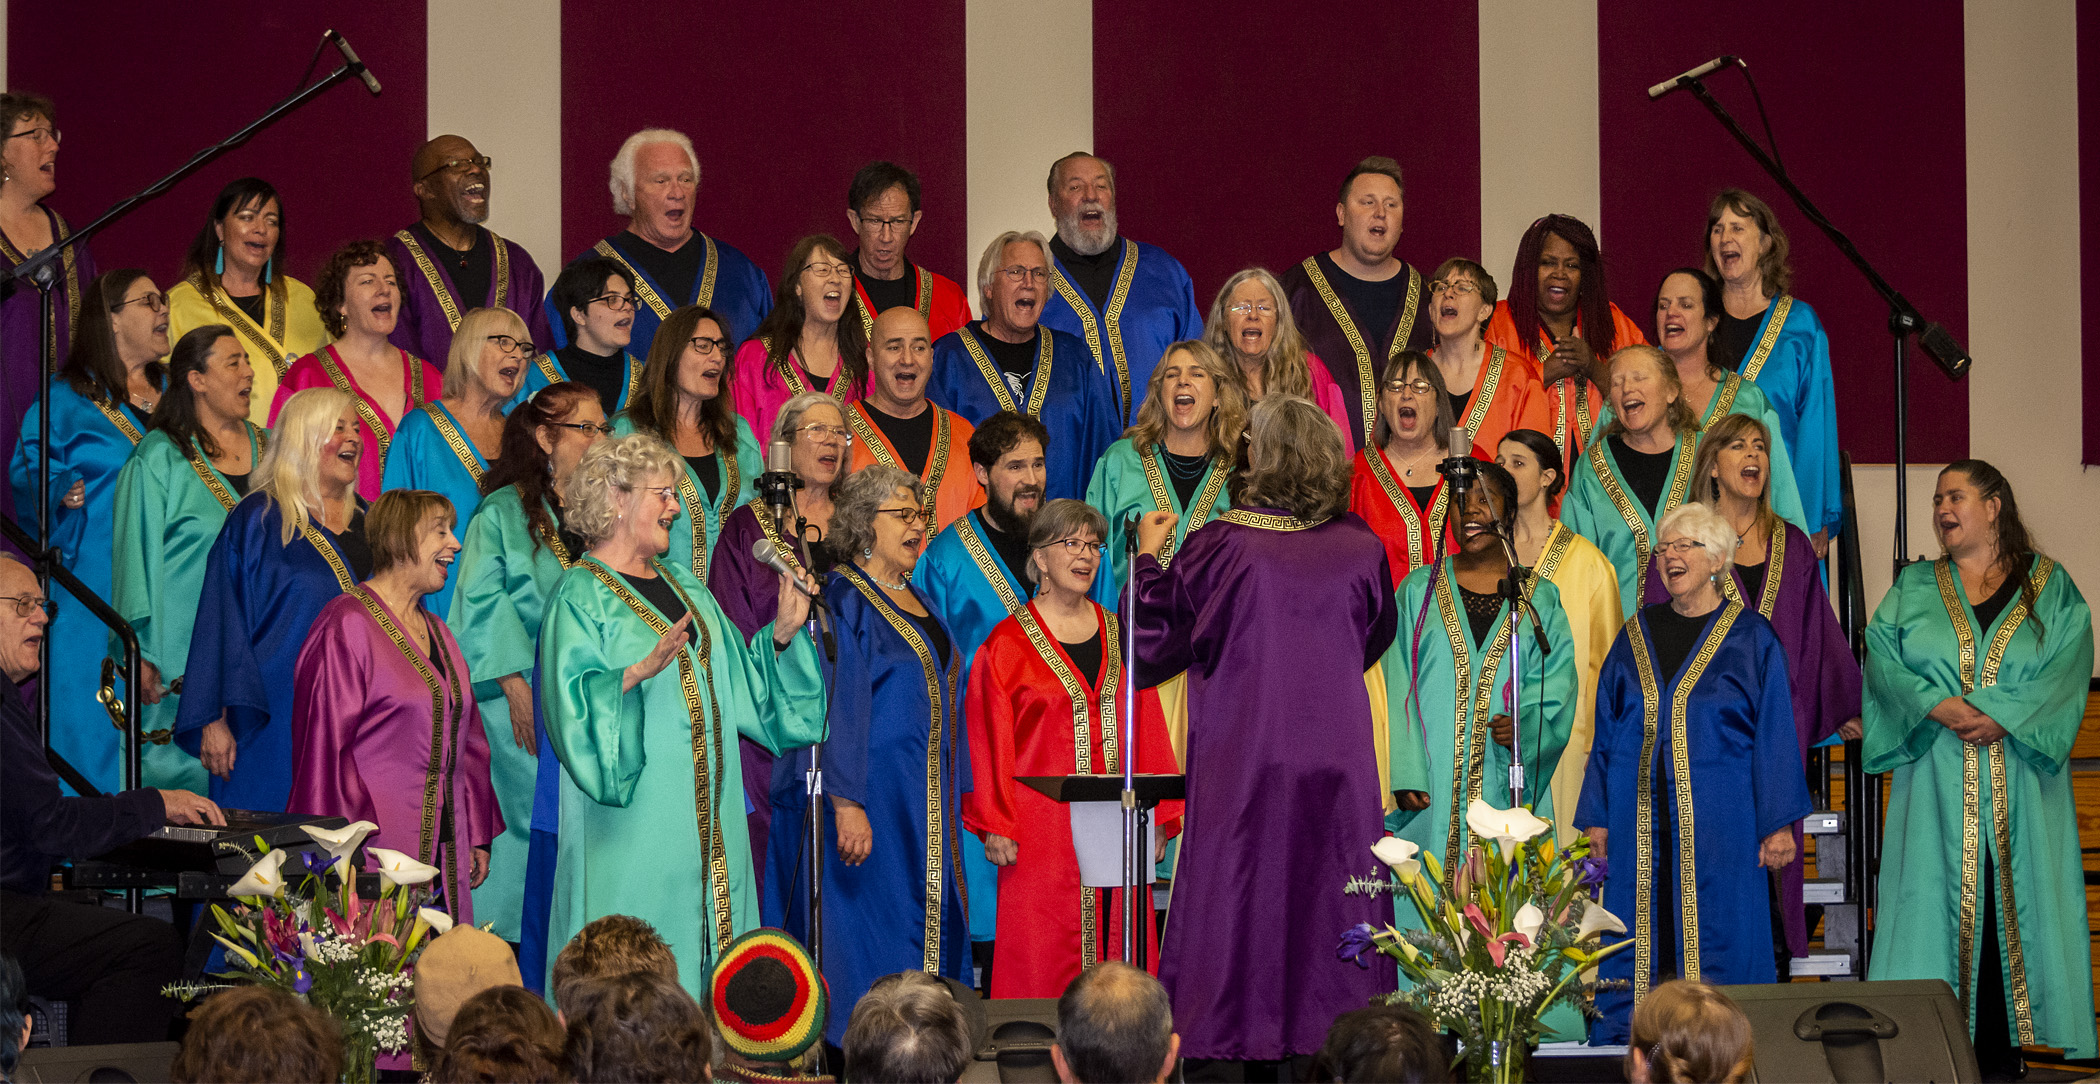 KRISTIN KIRBY DIRECTS THE CHOIR AT THE MAY 19, 2019 PRAYER BREAKFAST AT THE ARCATA COMMUNITY CENTER, OUR FINAL SHOW OF THE SEASON. (PHOTO: MARK LARSON)